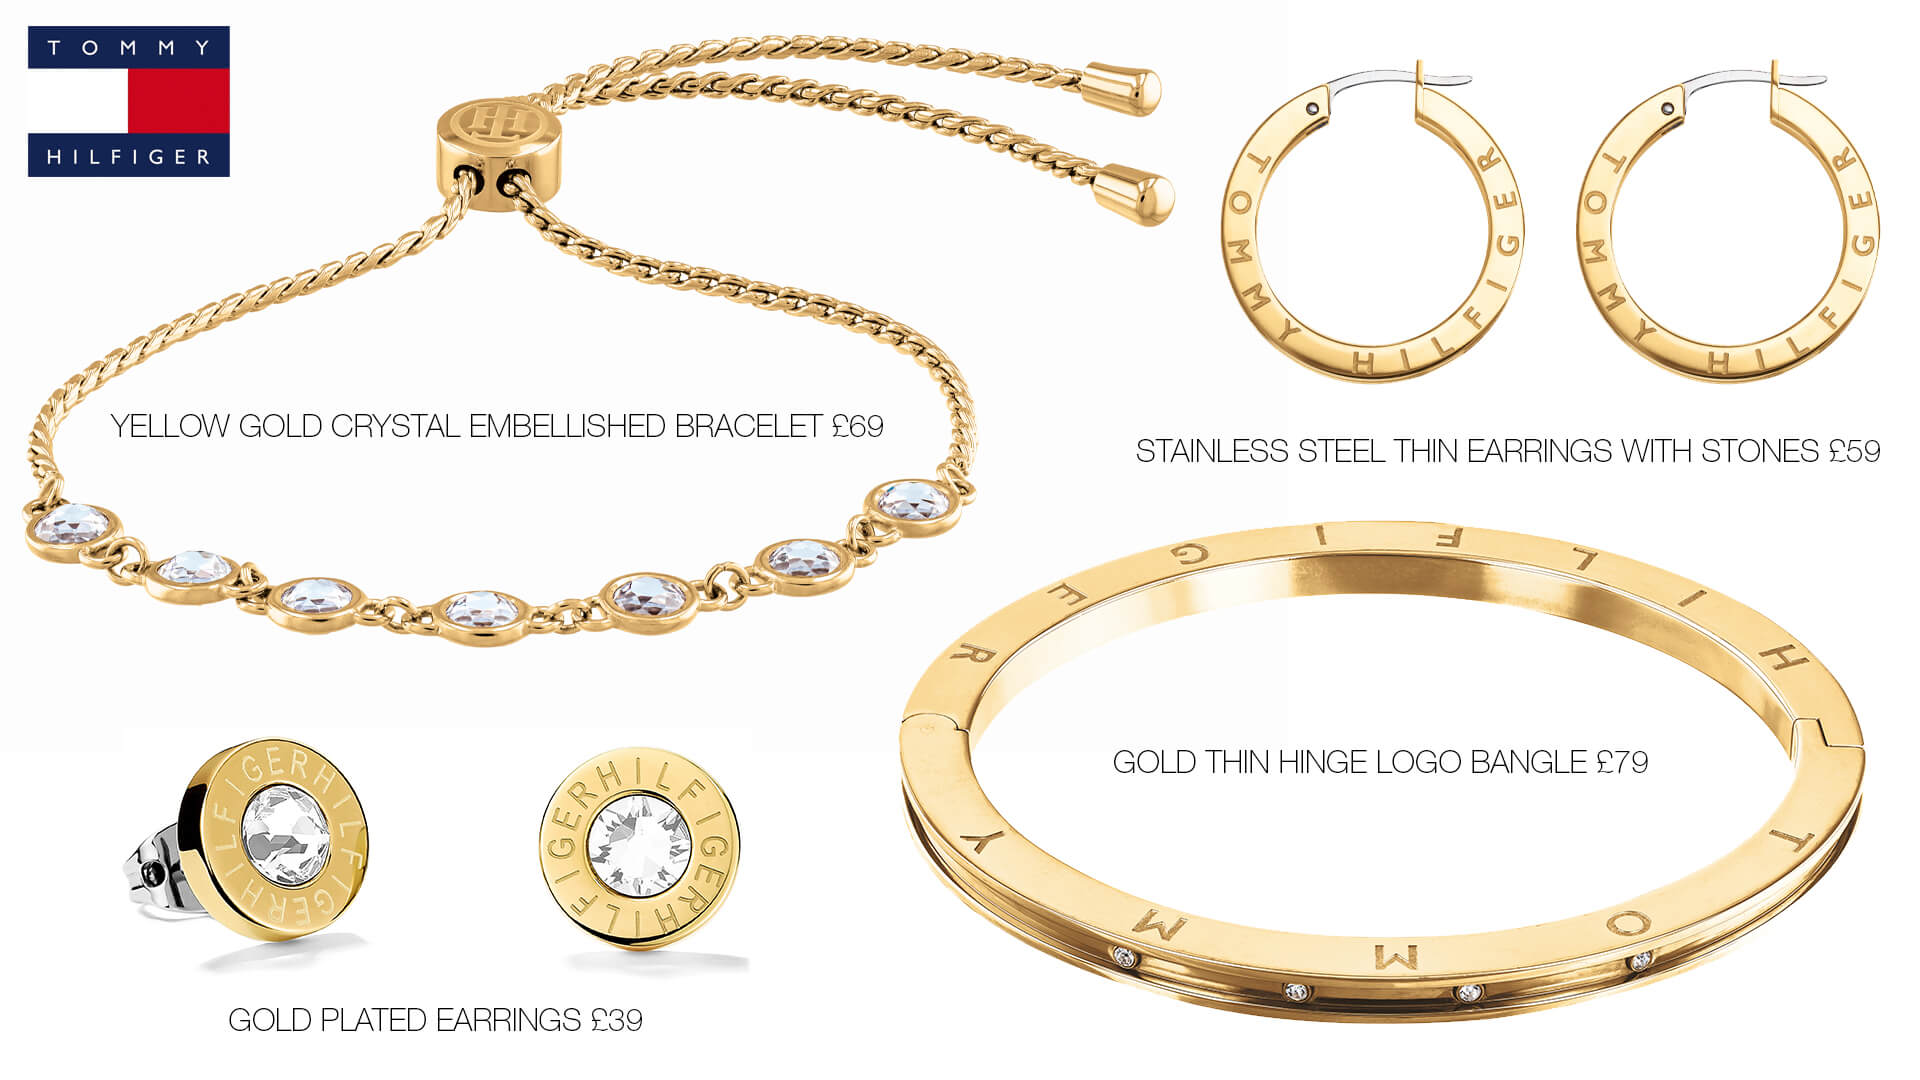 Tommy Hilfiger Women's Jewellery